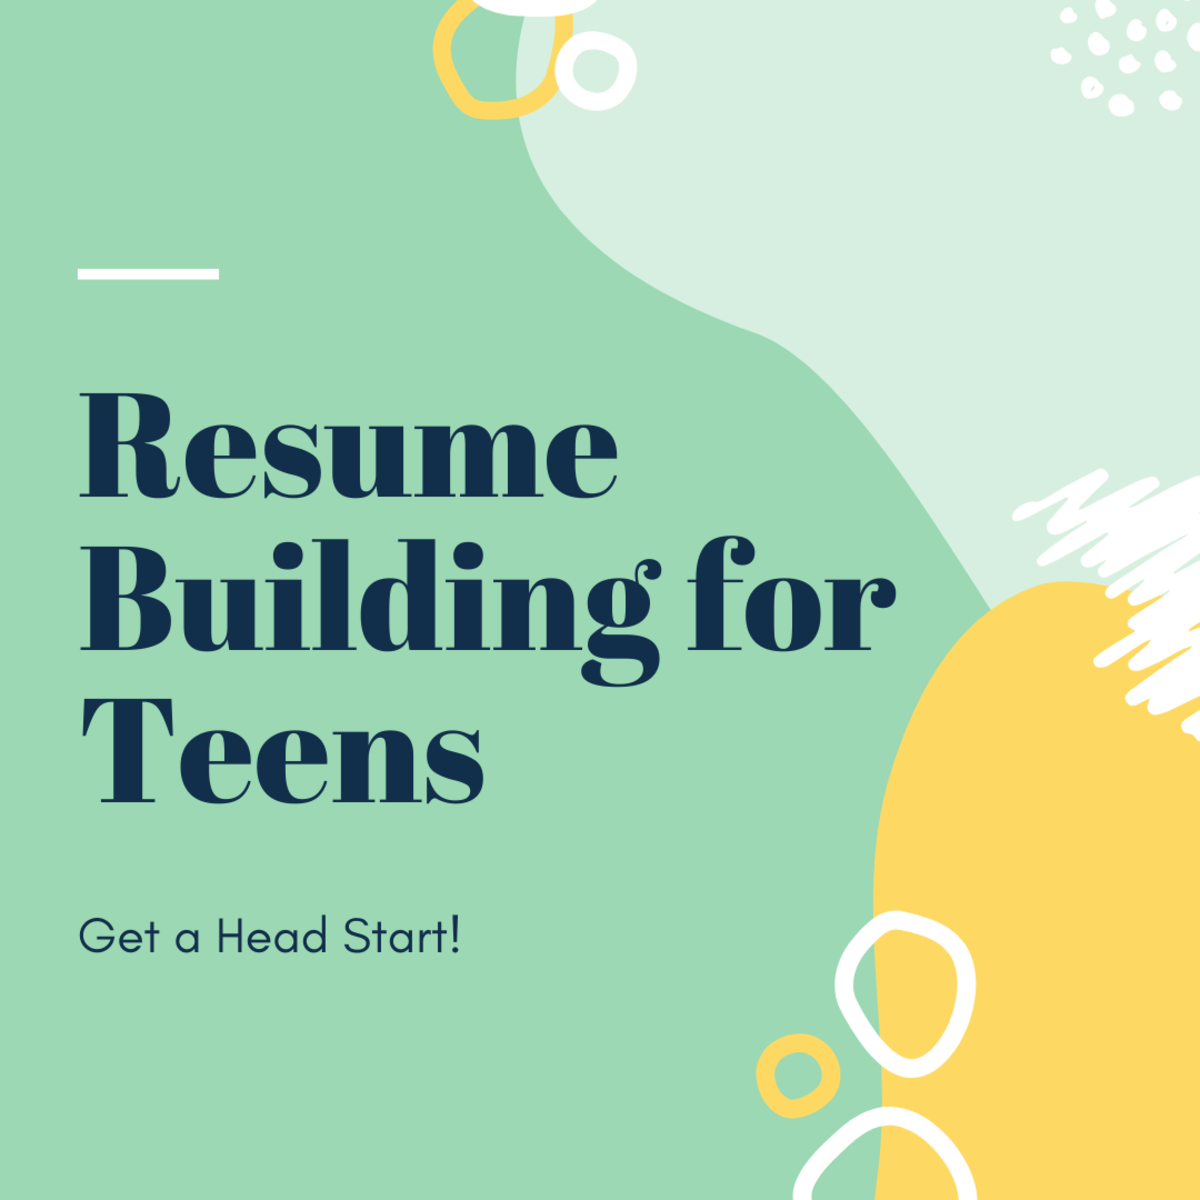 Skills That Teens Can Add to Their Resume